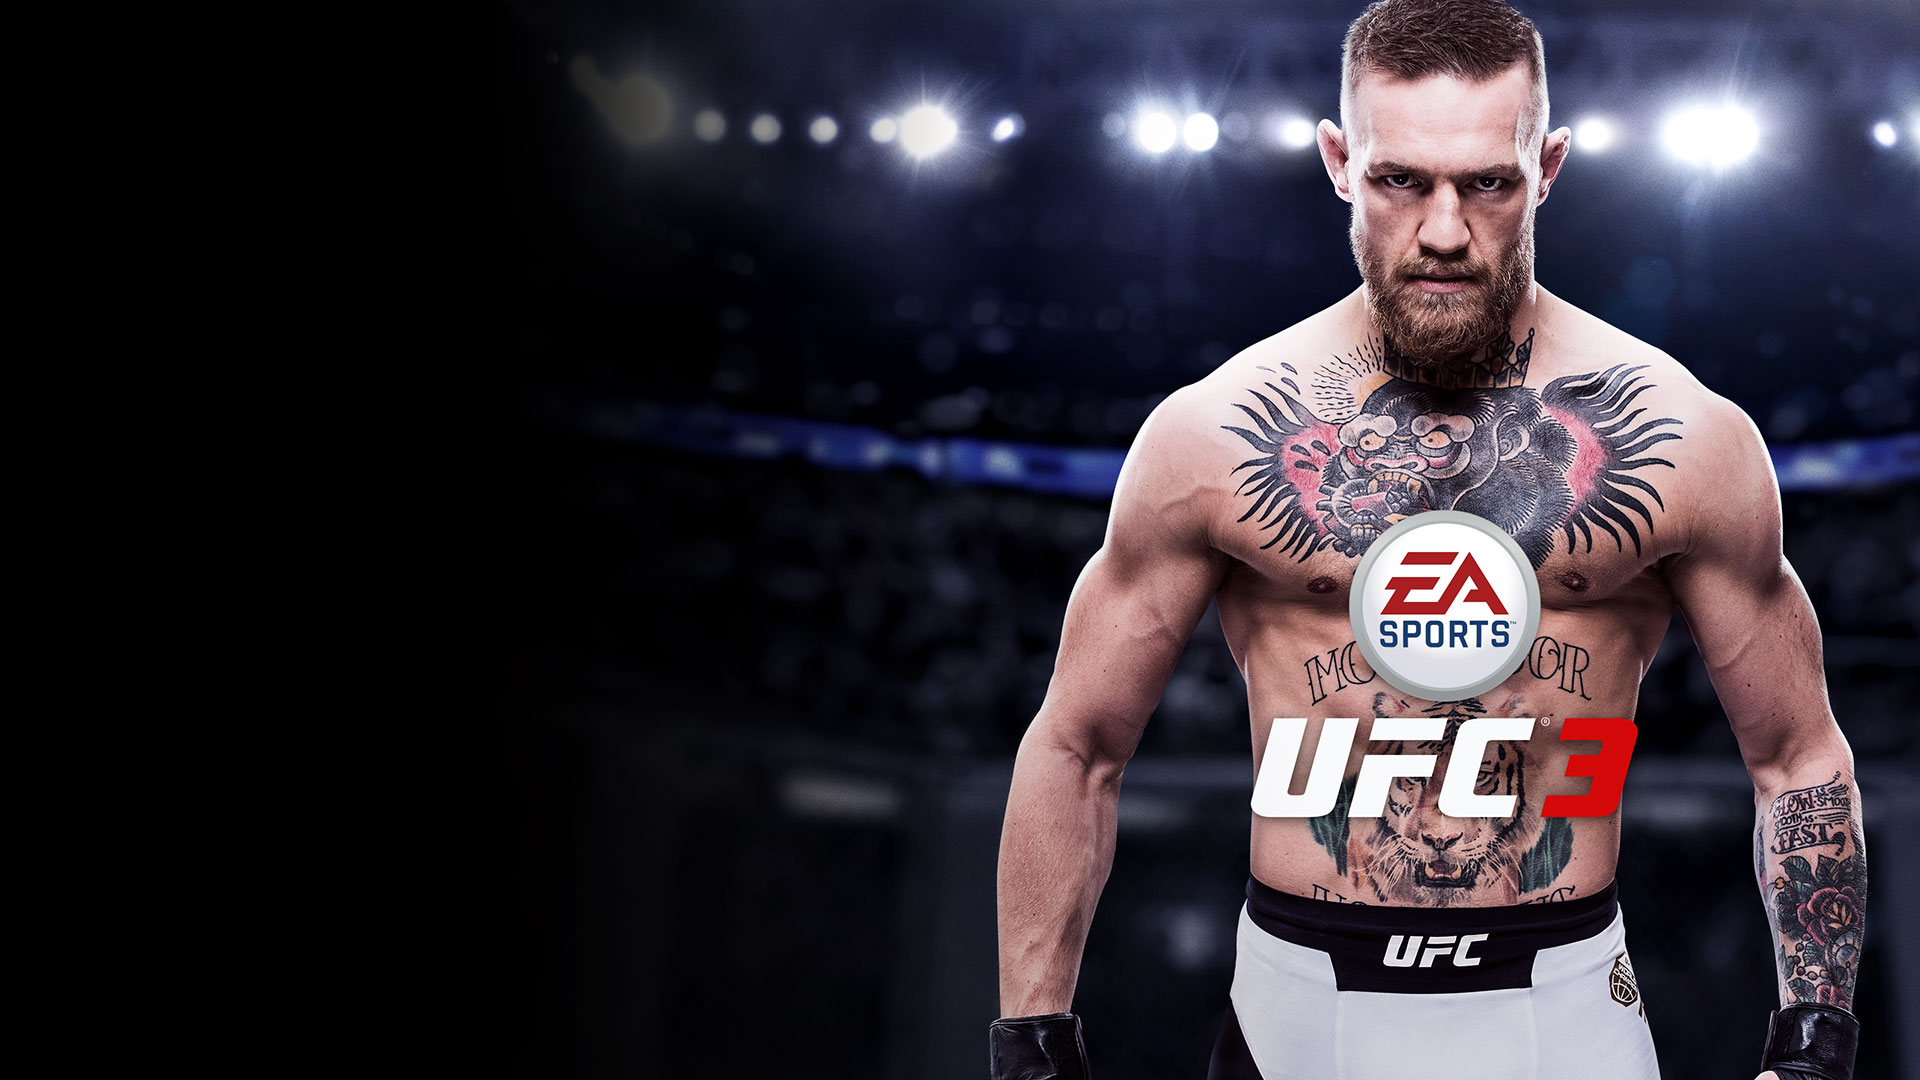 EA UFC 3 Review